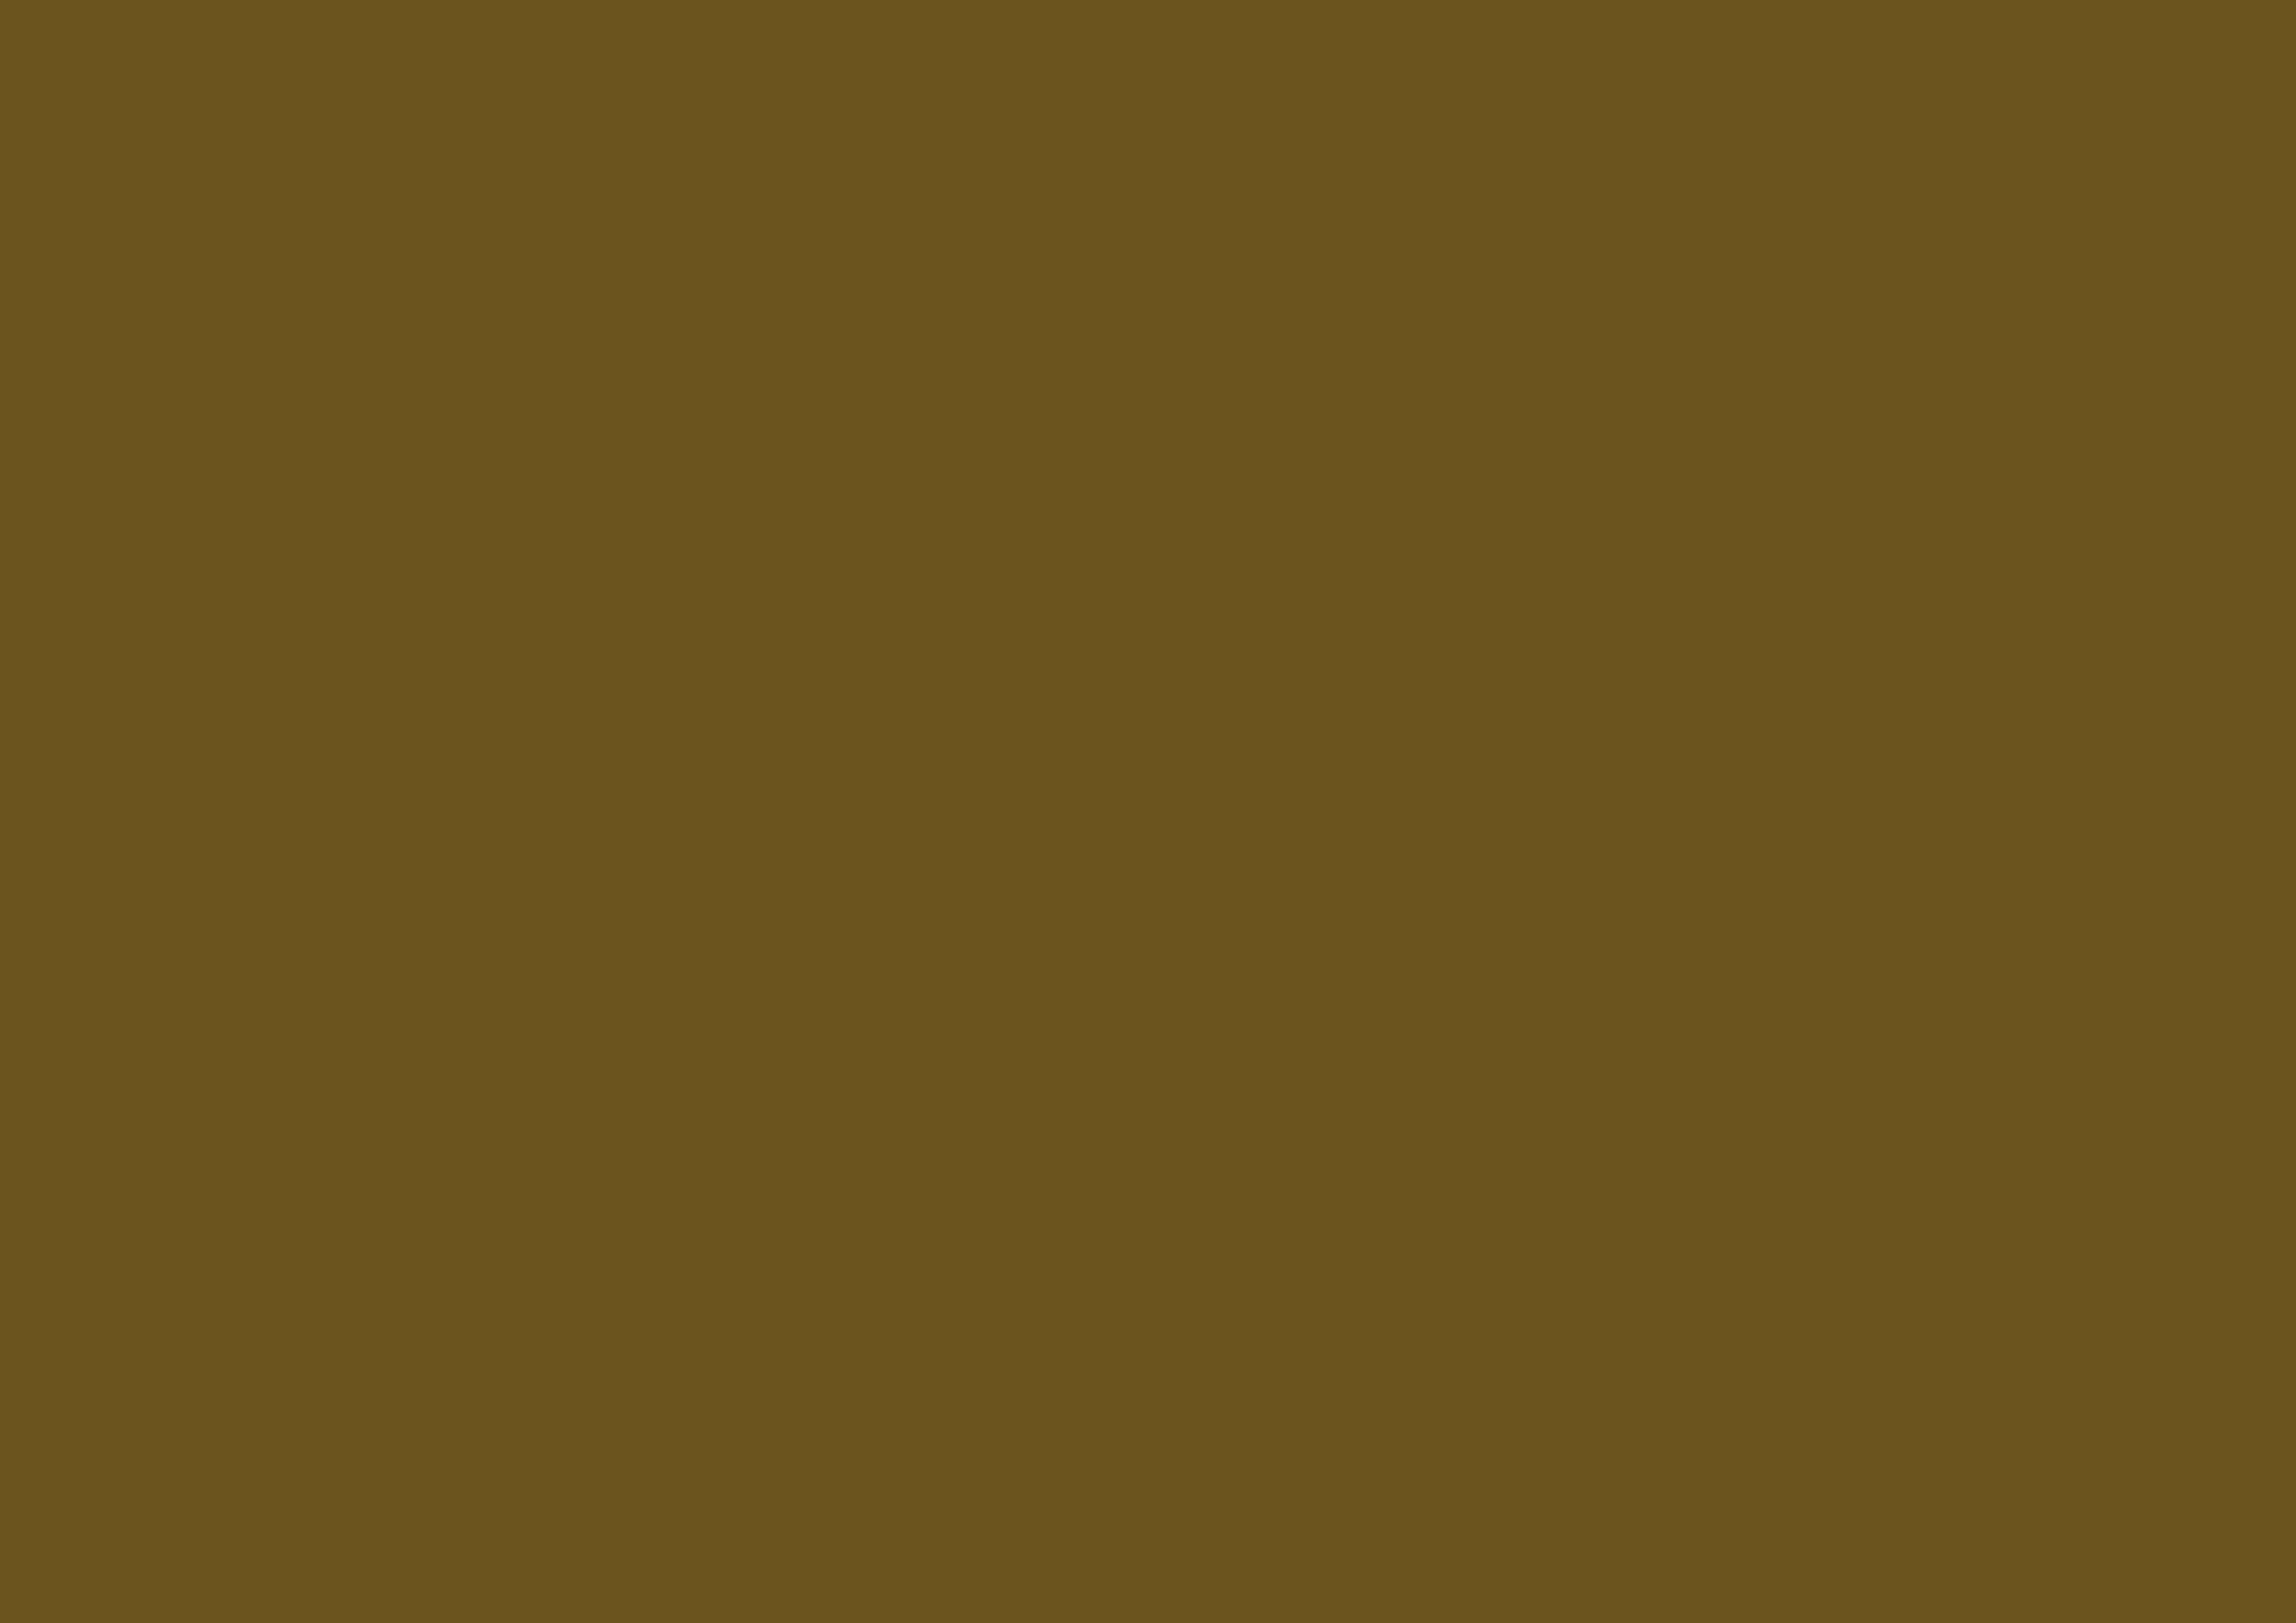 3508x2480 Field Drab Solid Color Background